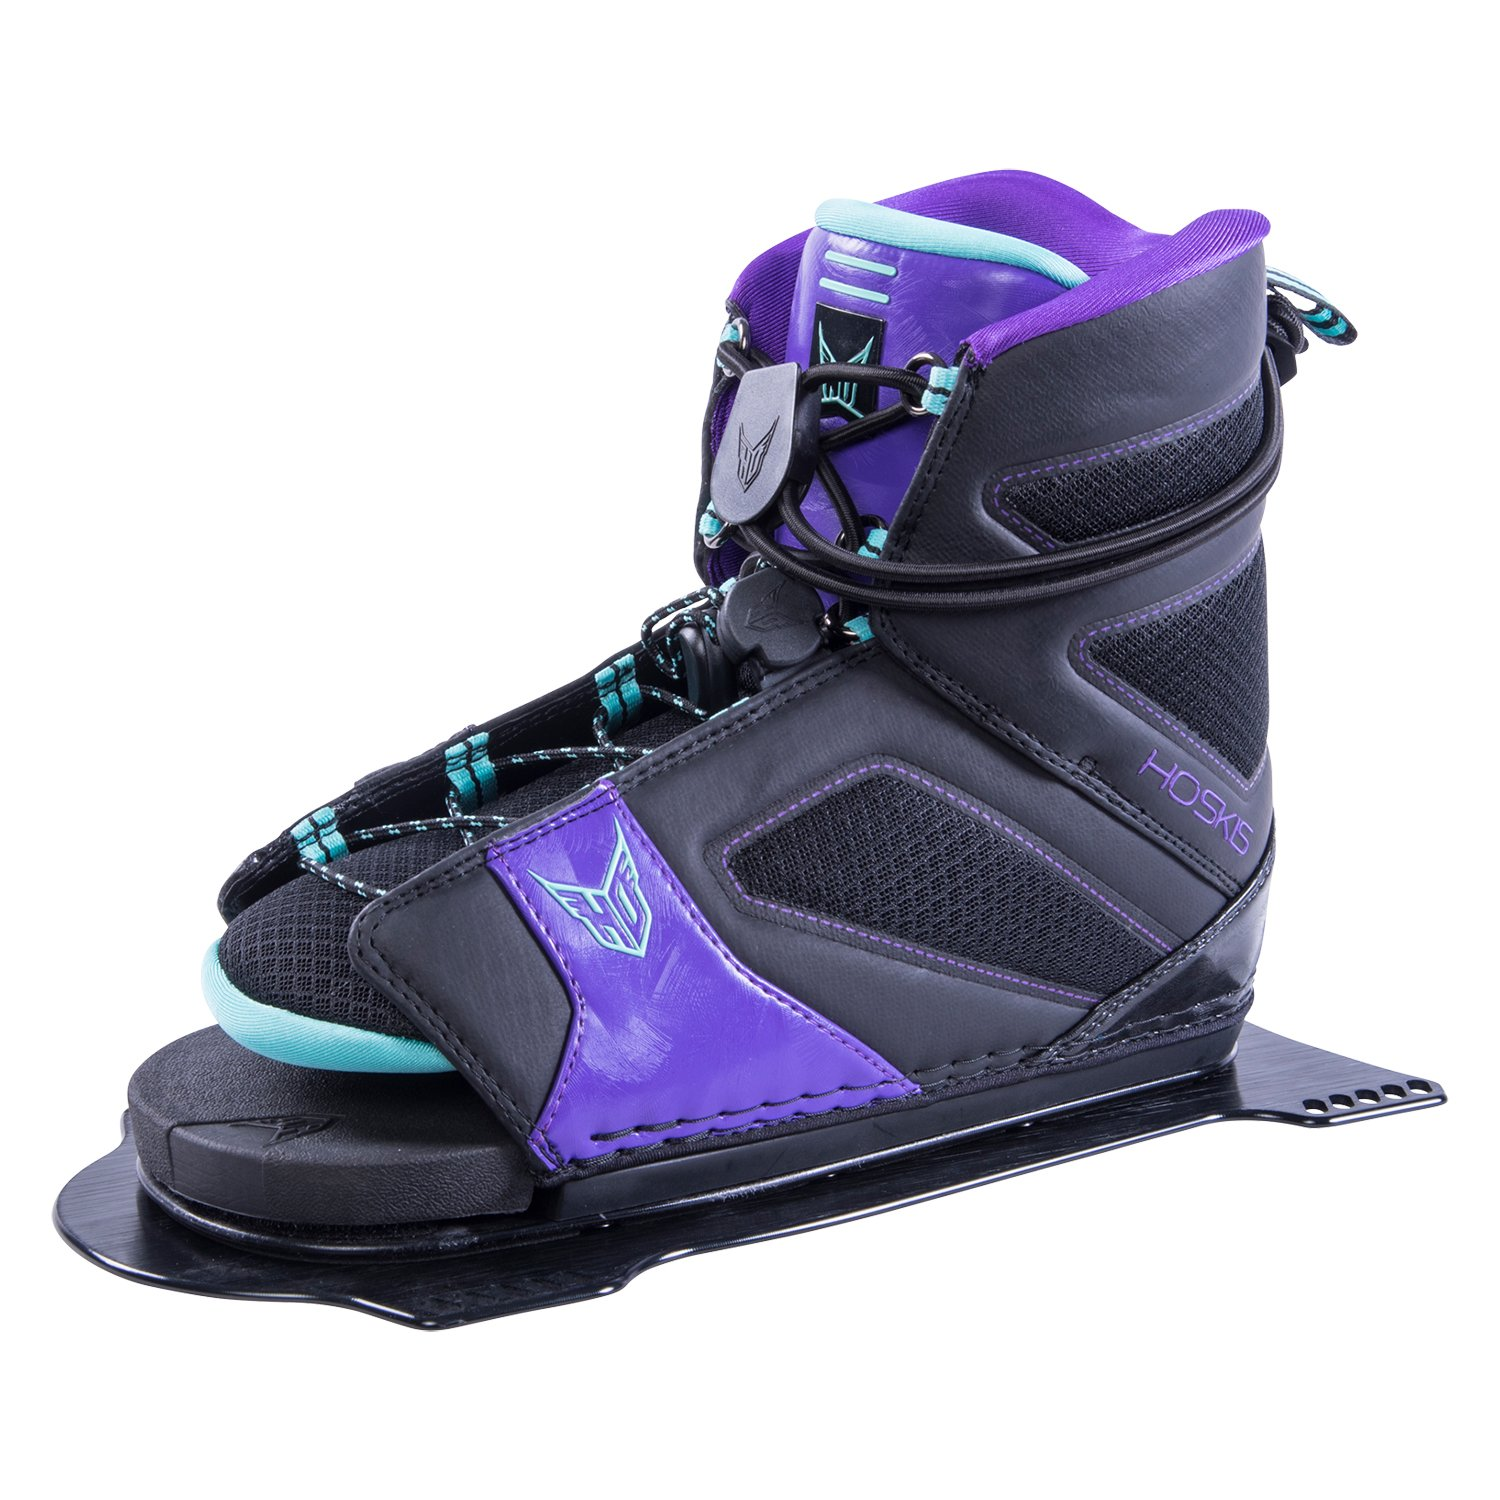 HO Sports 2018 FreeMAX Front Plate Women's Waterski Boots-5.5-9.5 by HO Sports (Image #2)